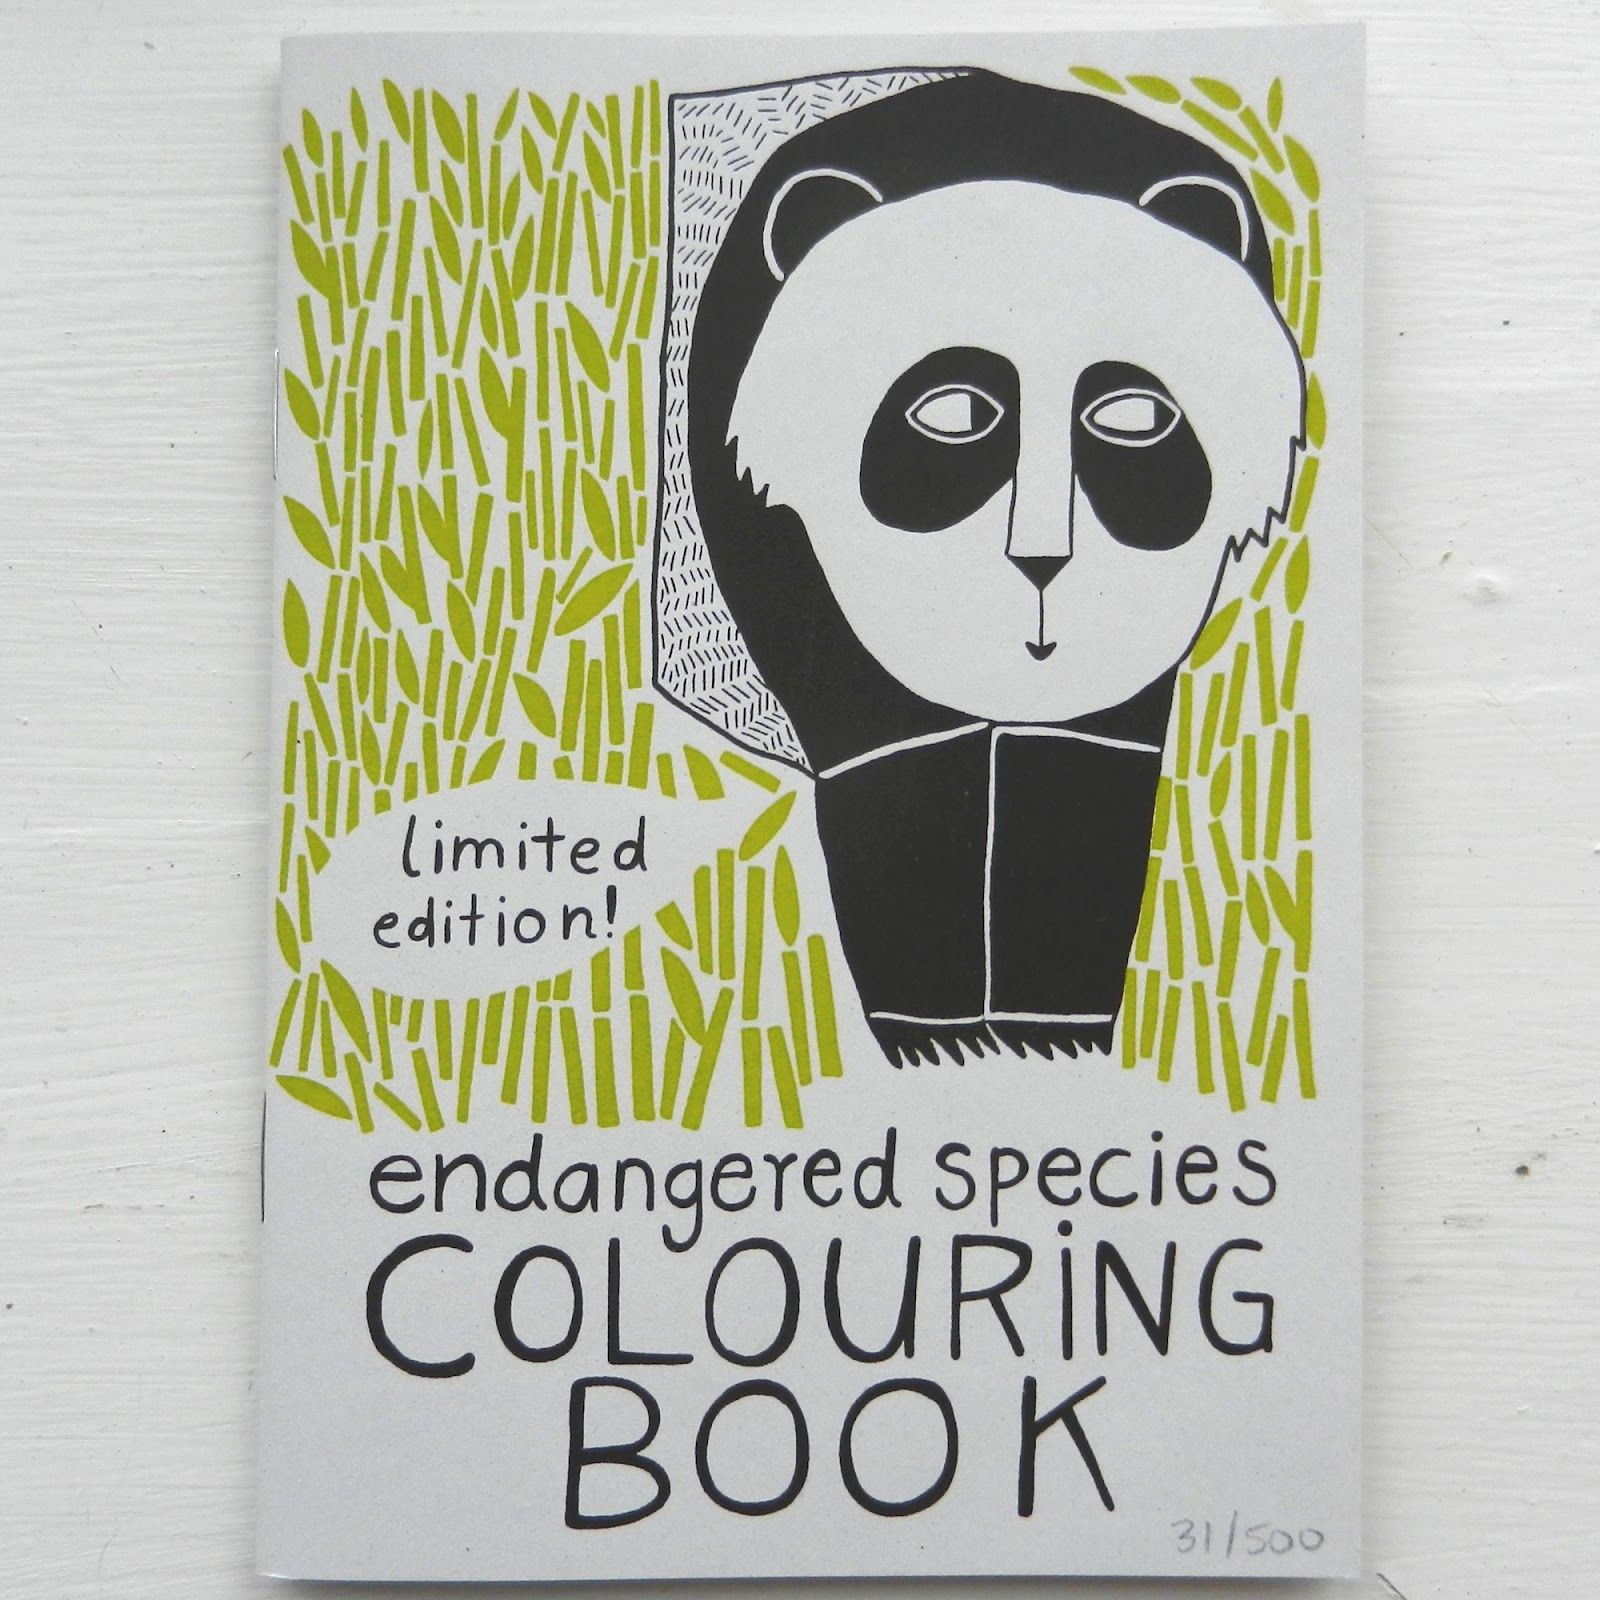 Endangered species colouring book zine covers pinterest endangered species colouring book biocorpaavc Image collections